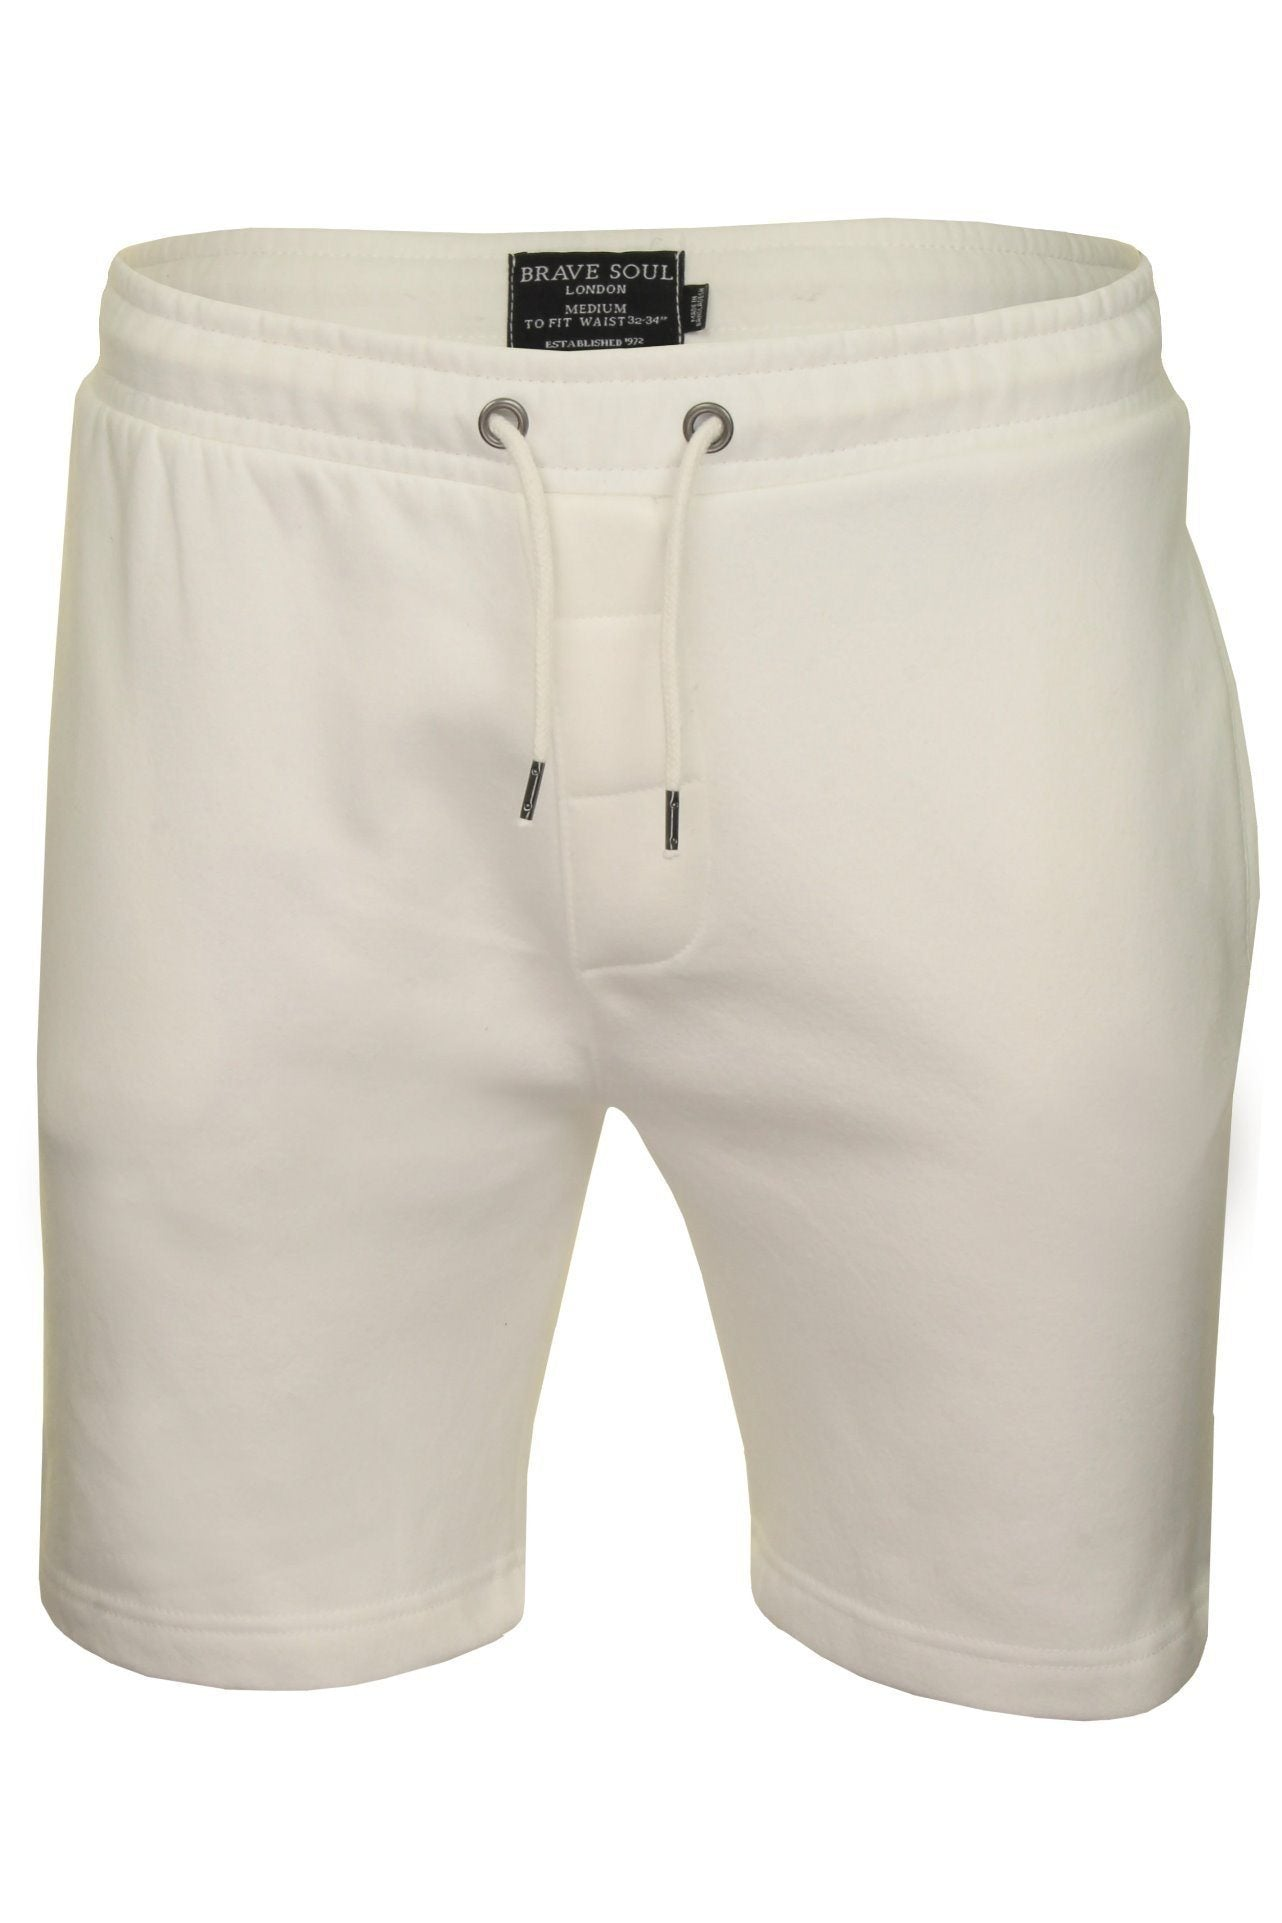 Shorts - Jersey Shorts Off White